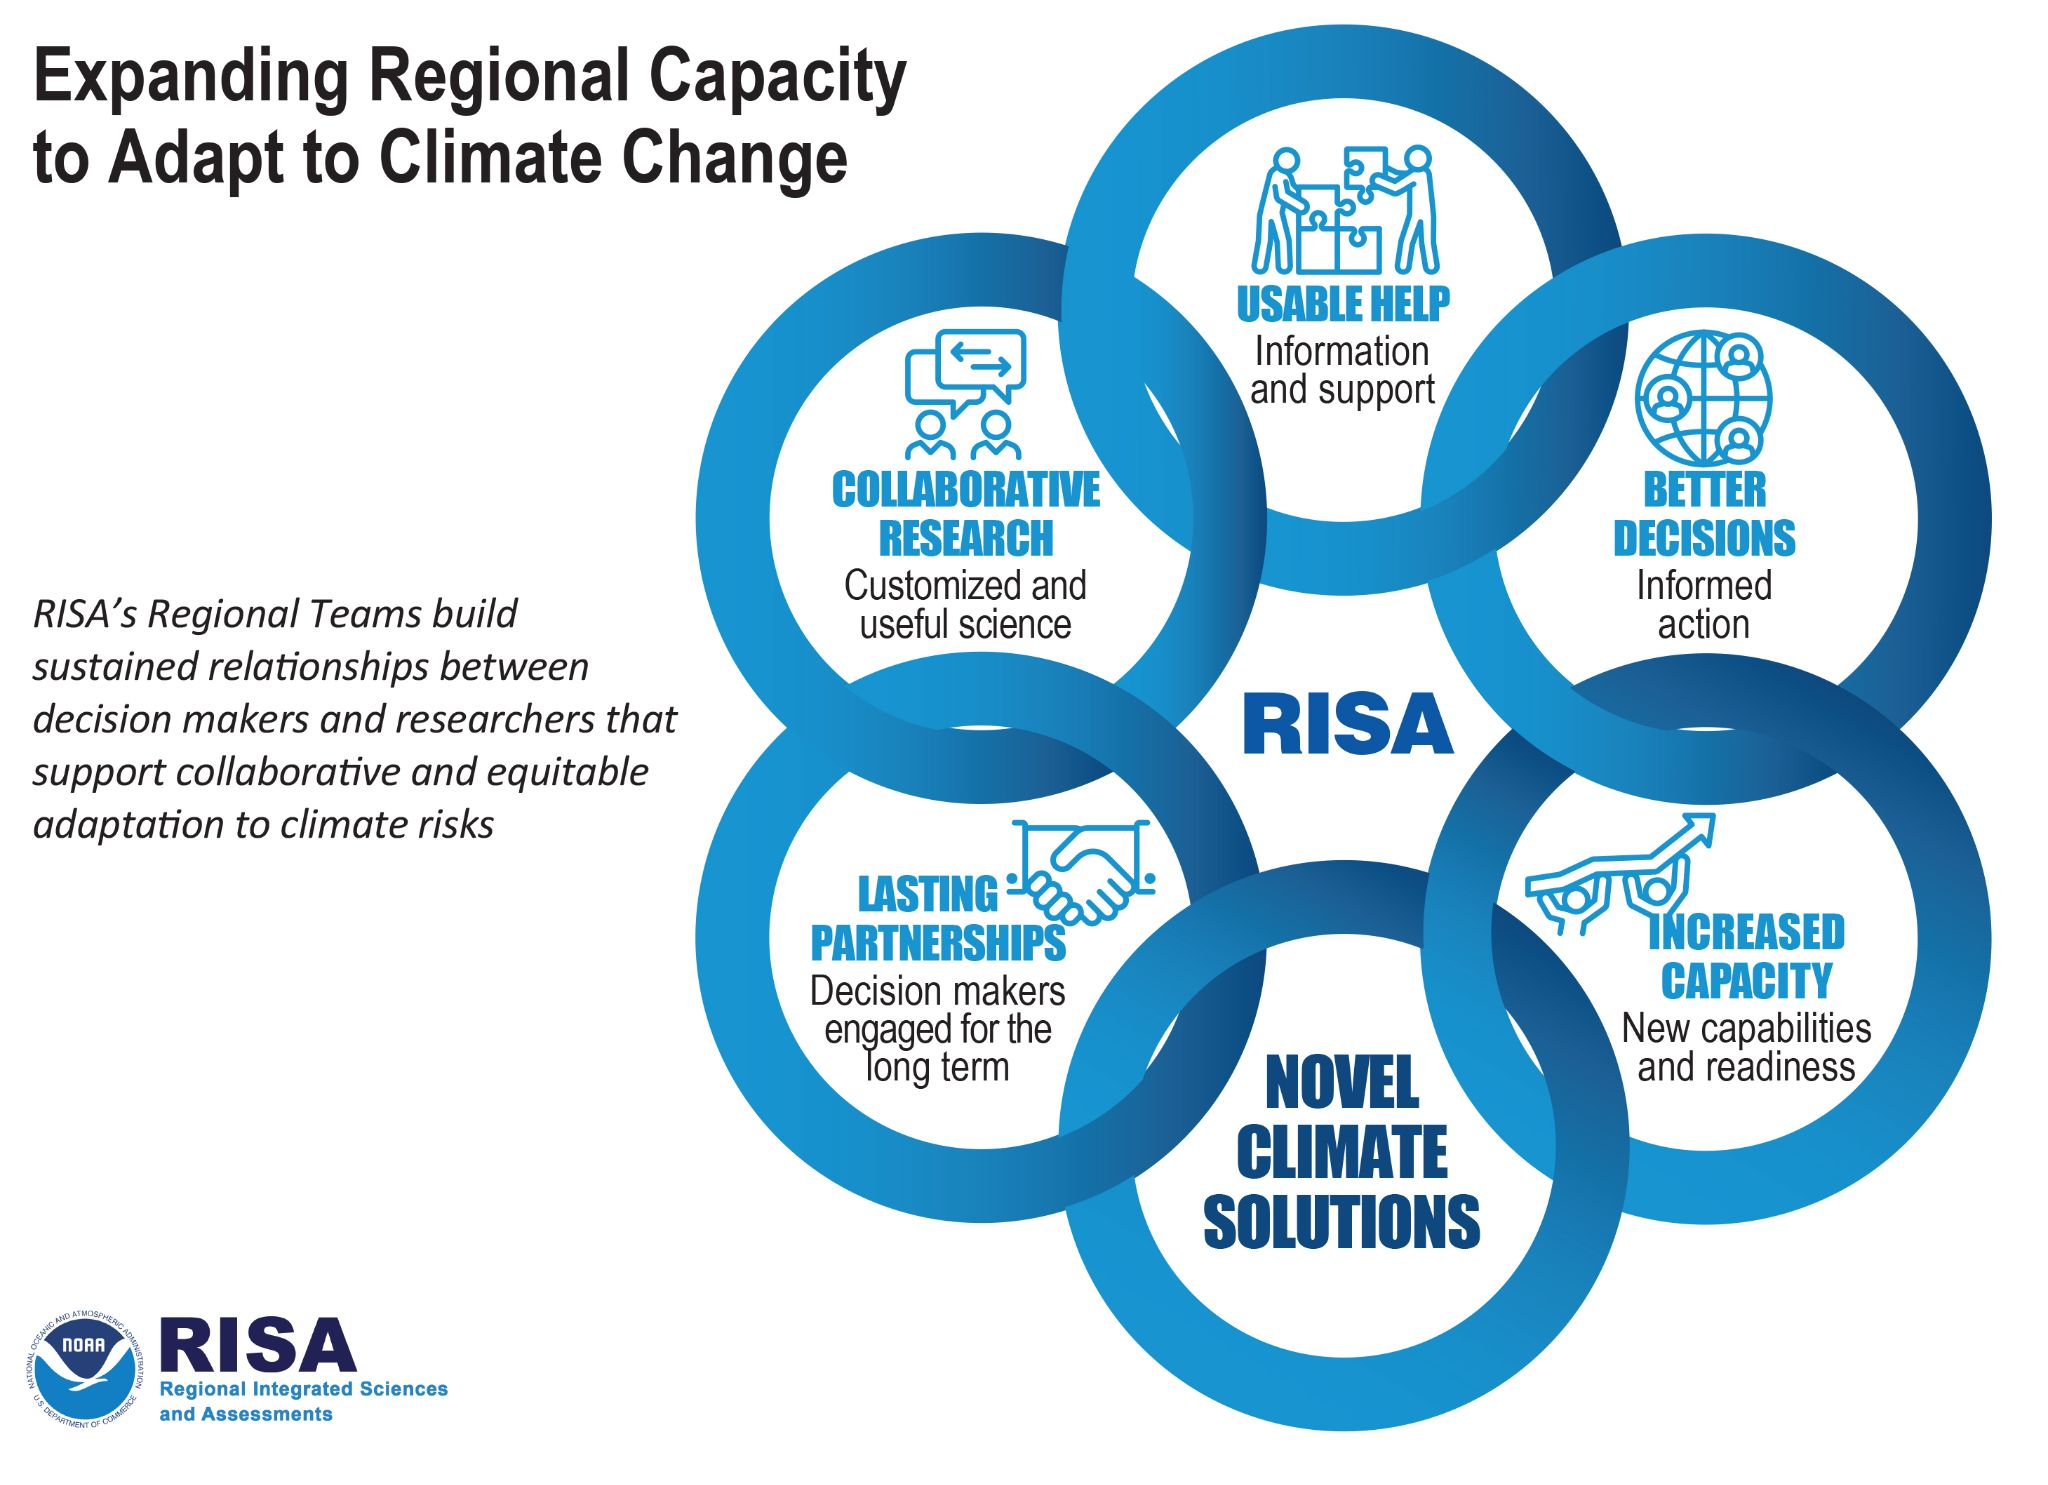 A graphic depiction of major aspects of the Regional Integrated Sciences and Assessments (RISA) Program. The graphic is a series of six interlocking rings with text in each. Text includes: Expanding Regional Capacity to Adapt to Climate Change RISA's Regional Teams build sustained relationships between decision makers and researchers that support collaborative and equitable adaptation to climate risks. Ring 1: Lasting Partnerships: Decision-makers engaged for the long term. Ring 2: Collaborative Research: Customized and useful science Ring 3: Usable Help: Information and support Ring 4: Better Decisions: Informed action Ring 5: Increased Capacity: New capabilities and readiness Ring 6: Novel Climate Solutions